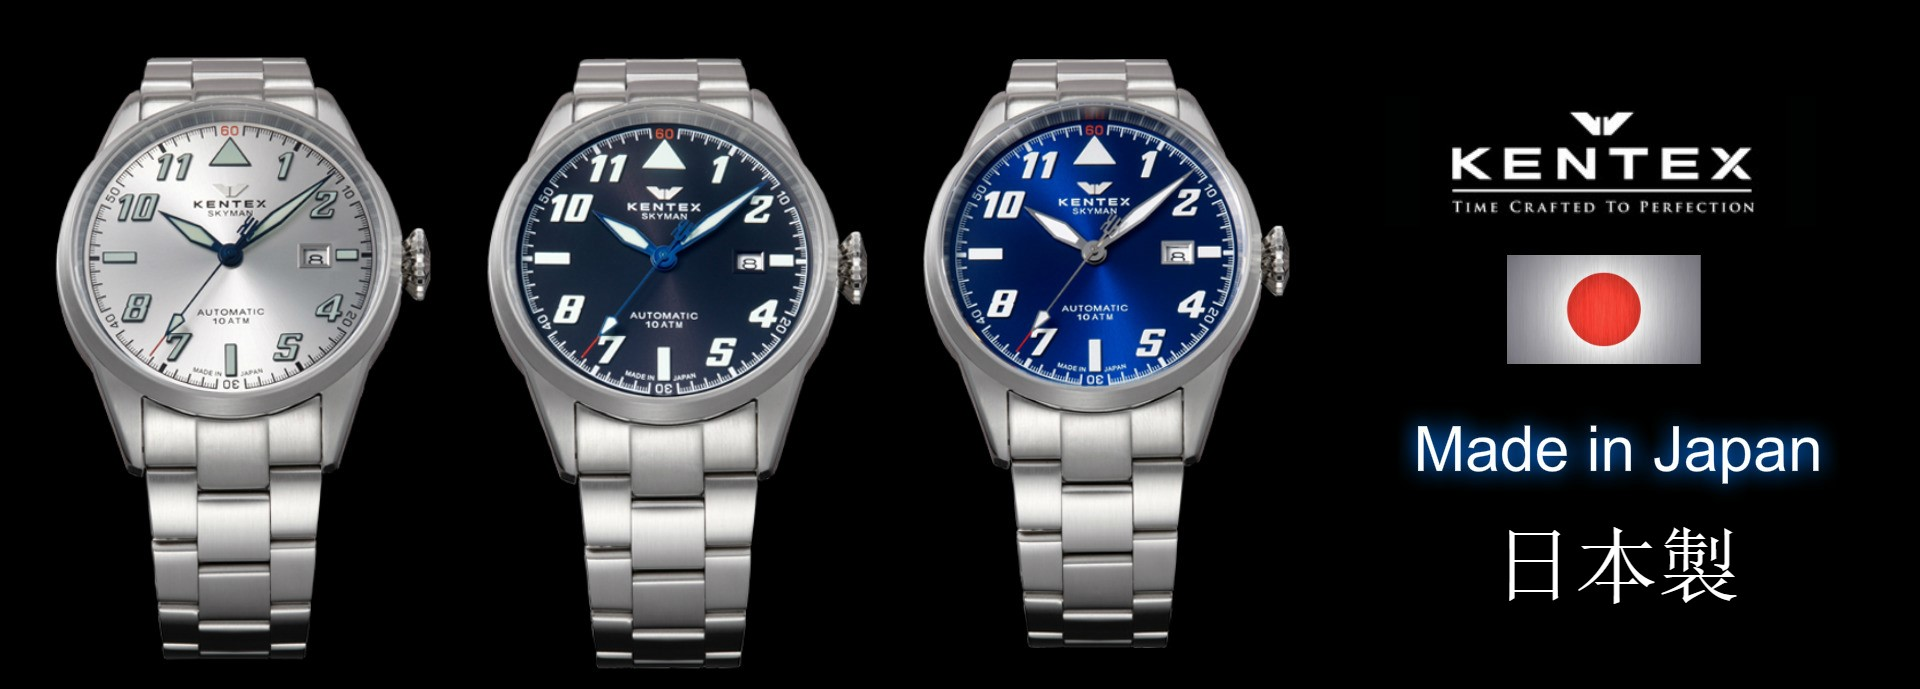 Kentex Pilot watch